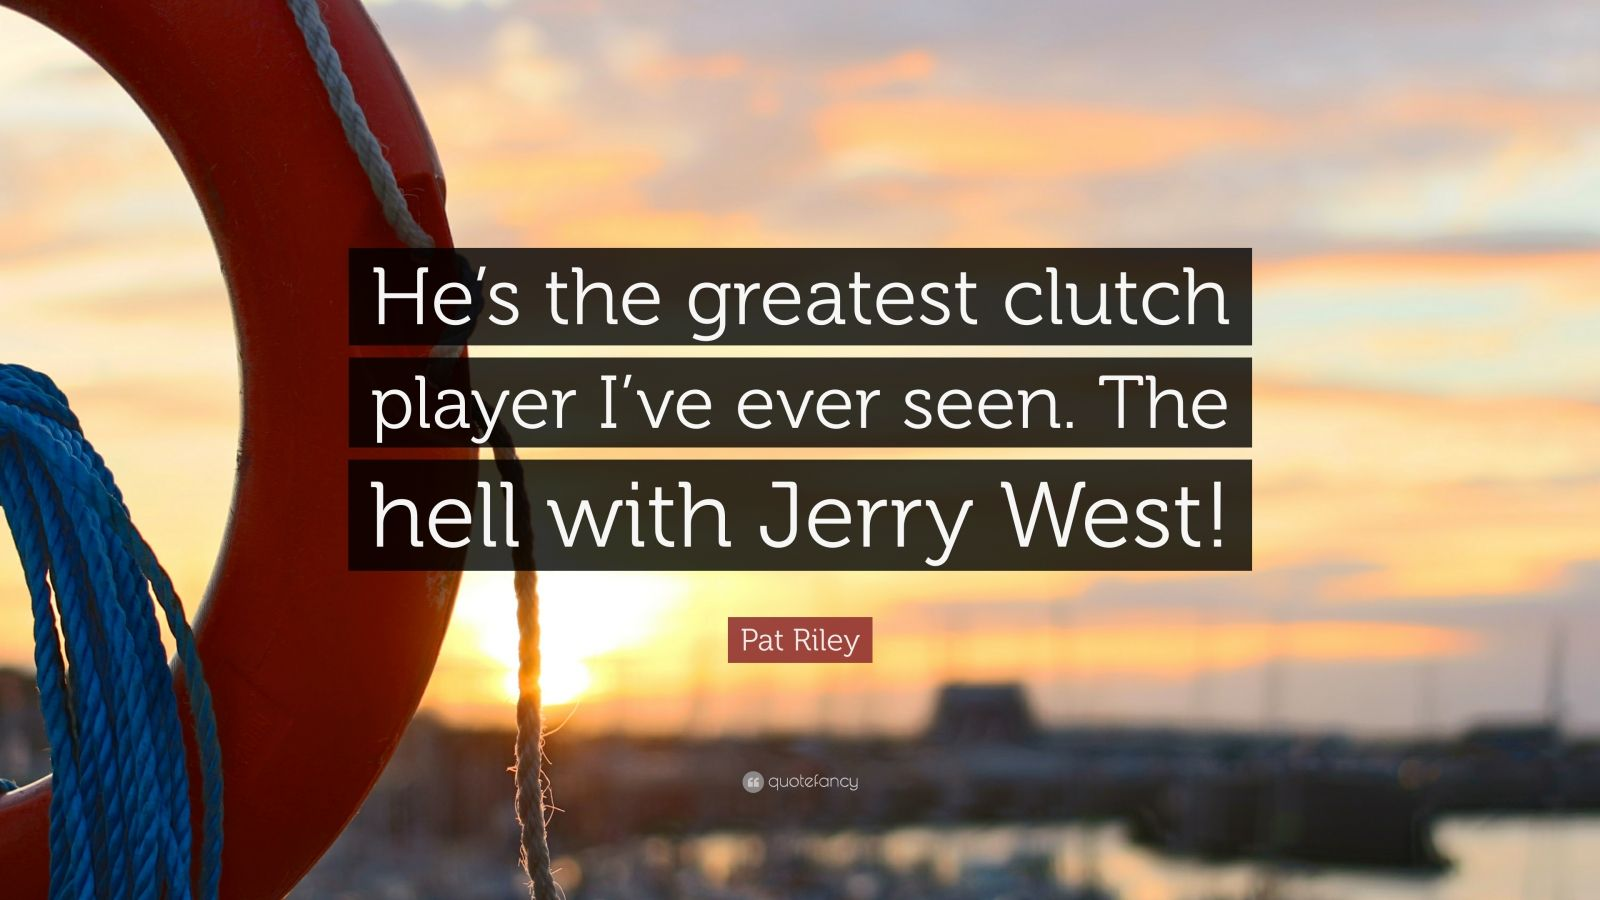 """Pat Riley Quote: """"He's the greatest clutch player I've ever seen. The hell with Jerry West!"""""""